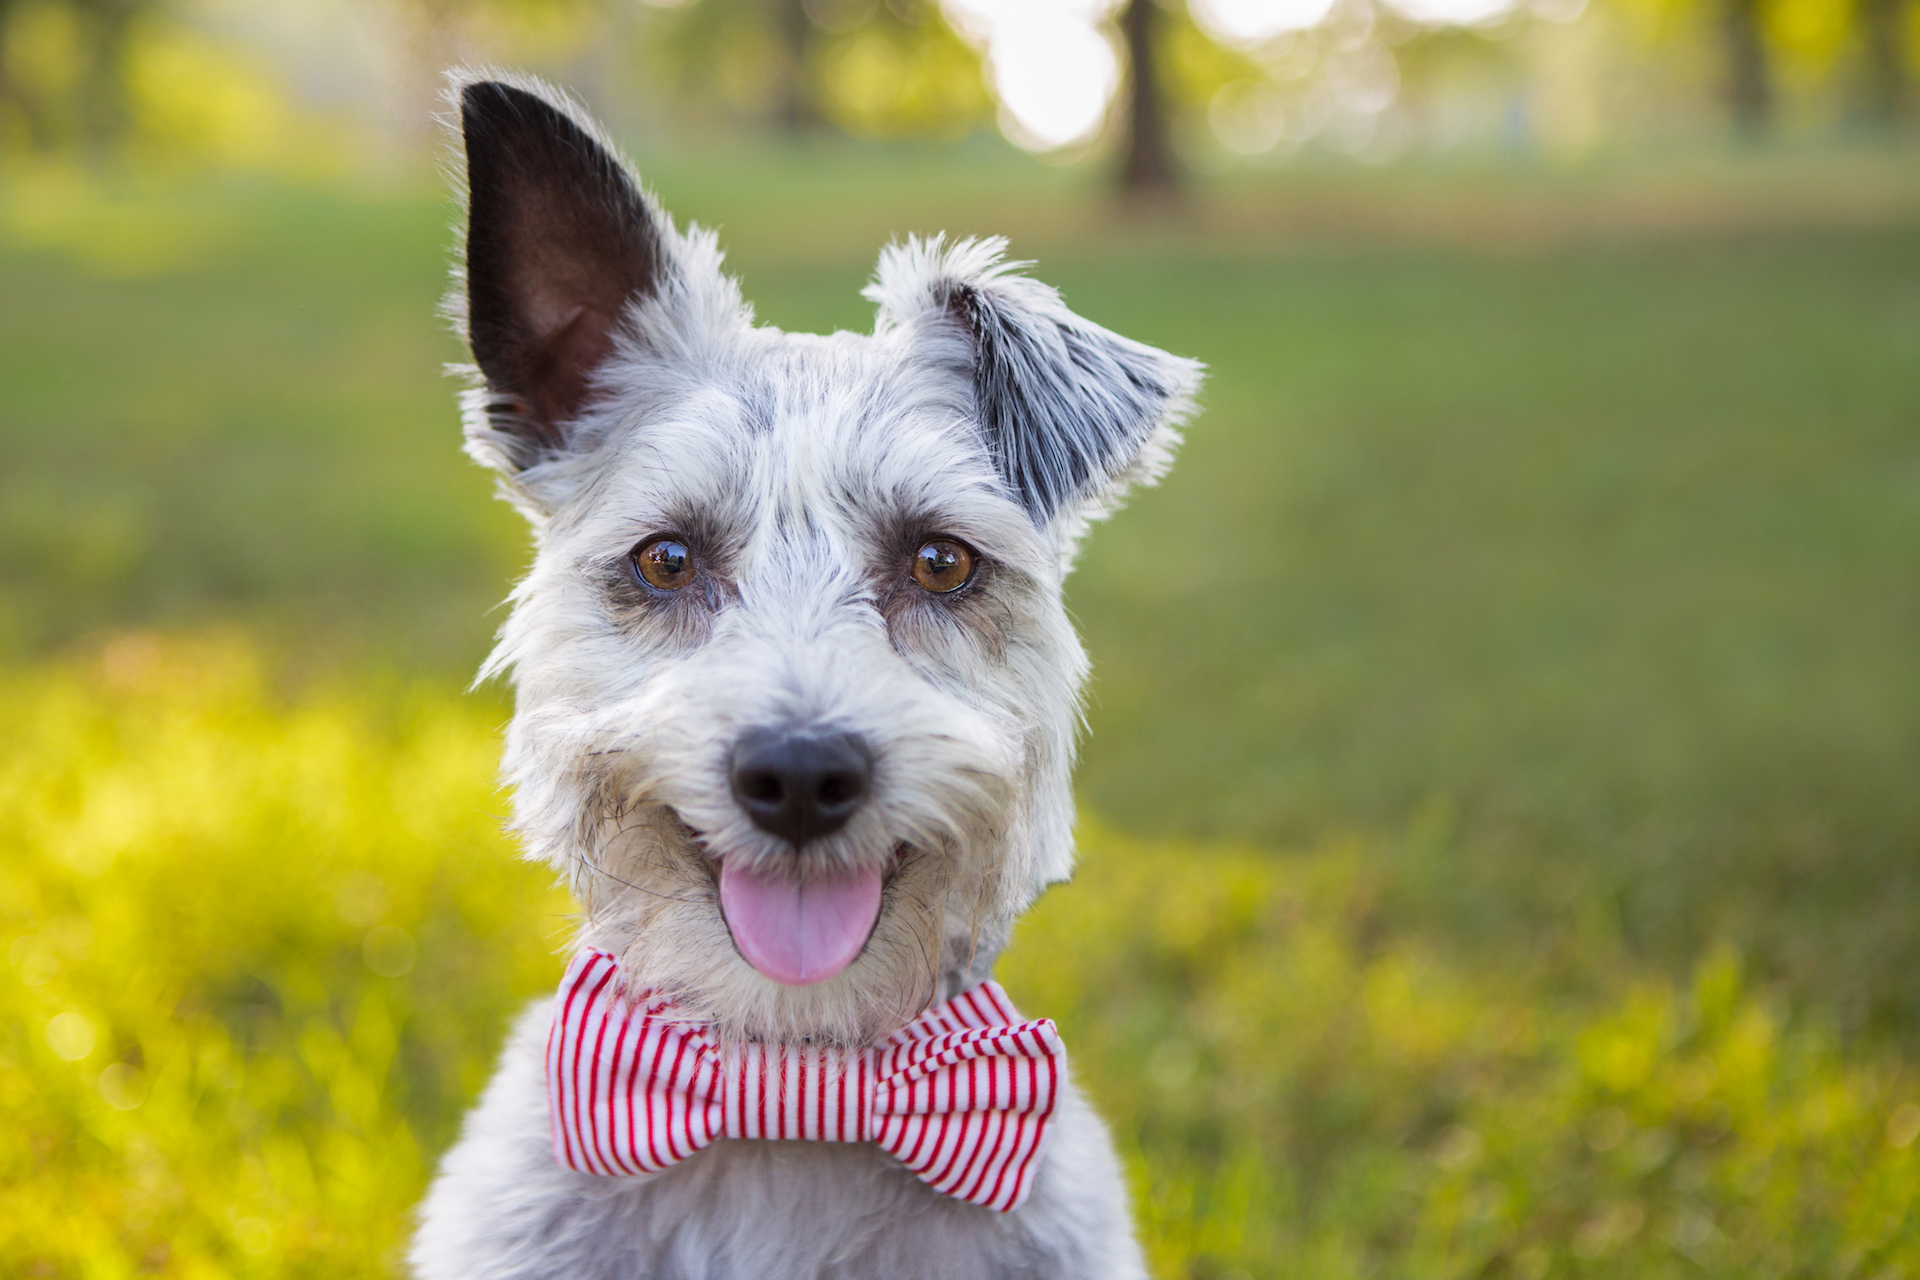 Schnauzer with a red and white striped bowtie on